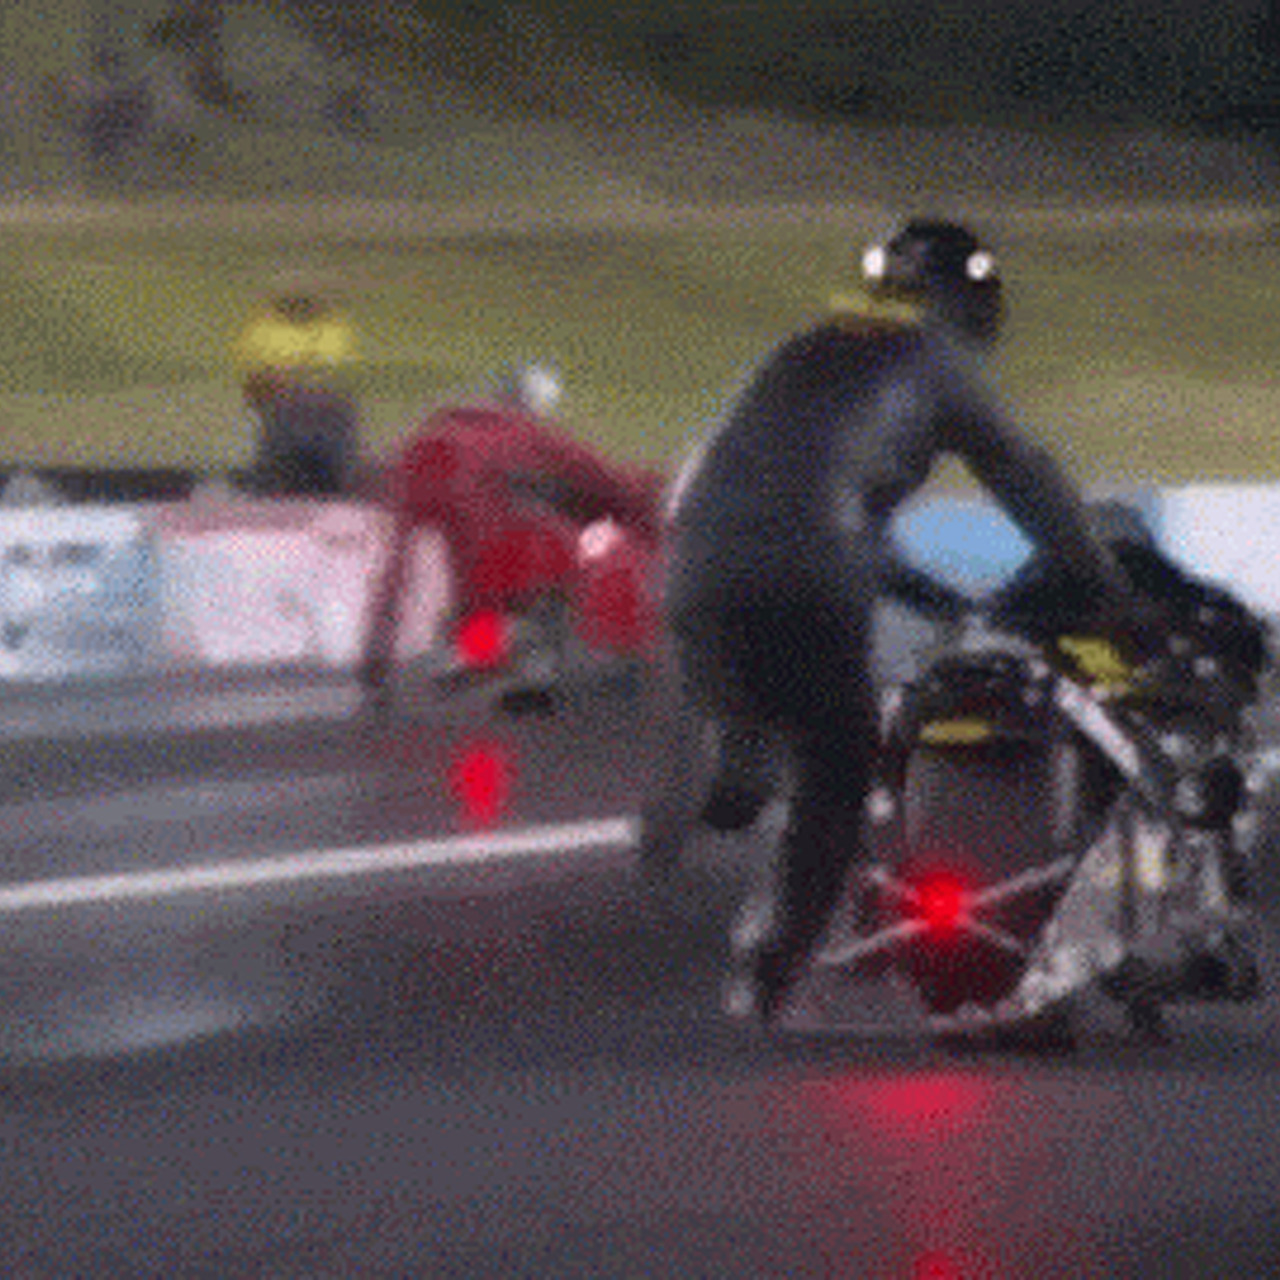 Watch This Drag Race Turn Into a Hilarious All-Out Foot Race